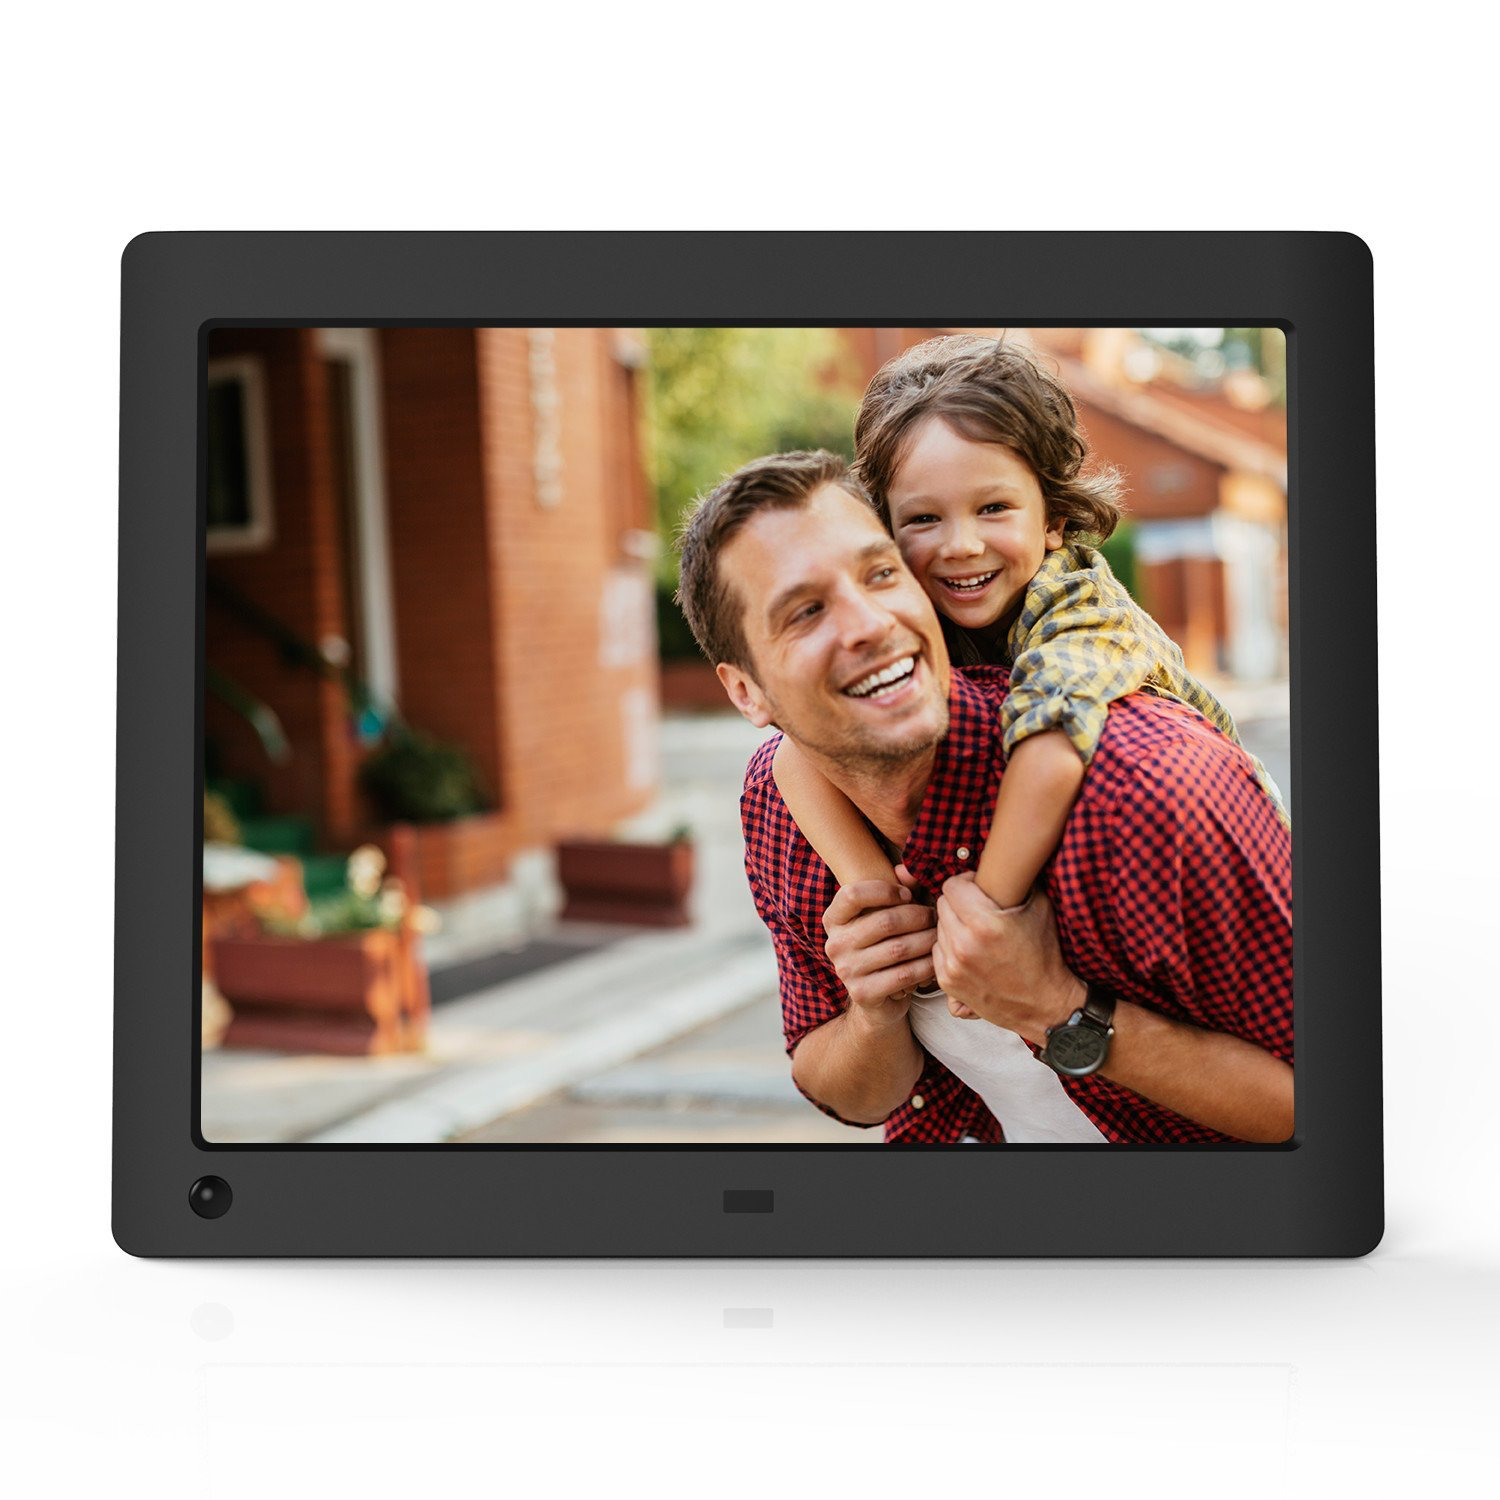 image 5 Best Digital Photo Frames 2021 - Digital Picture Frames with SD Card, Wifi